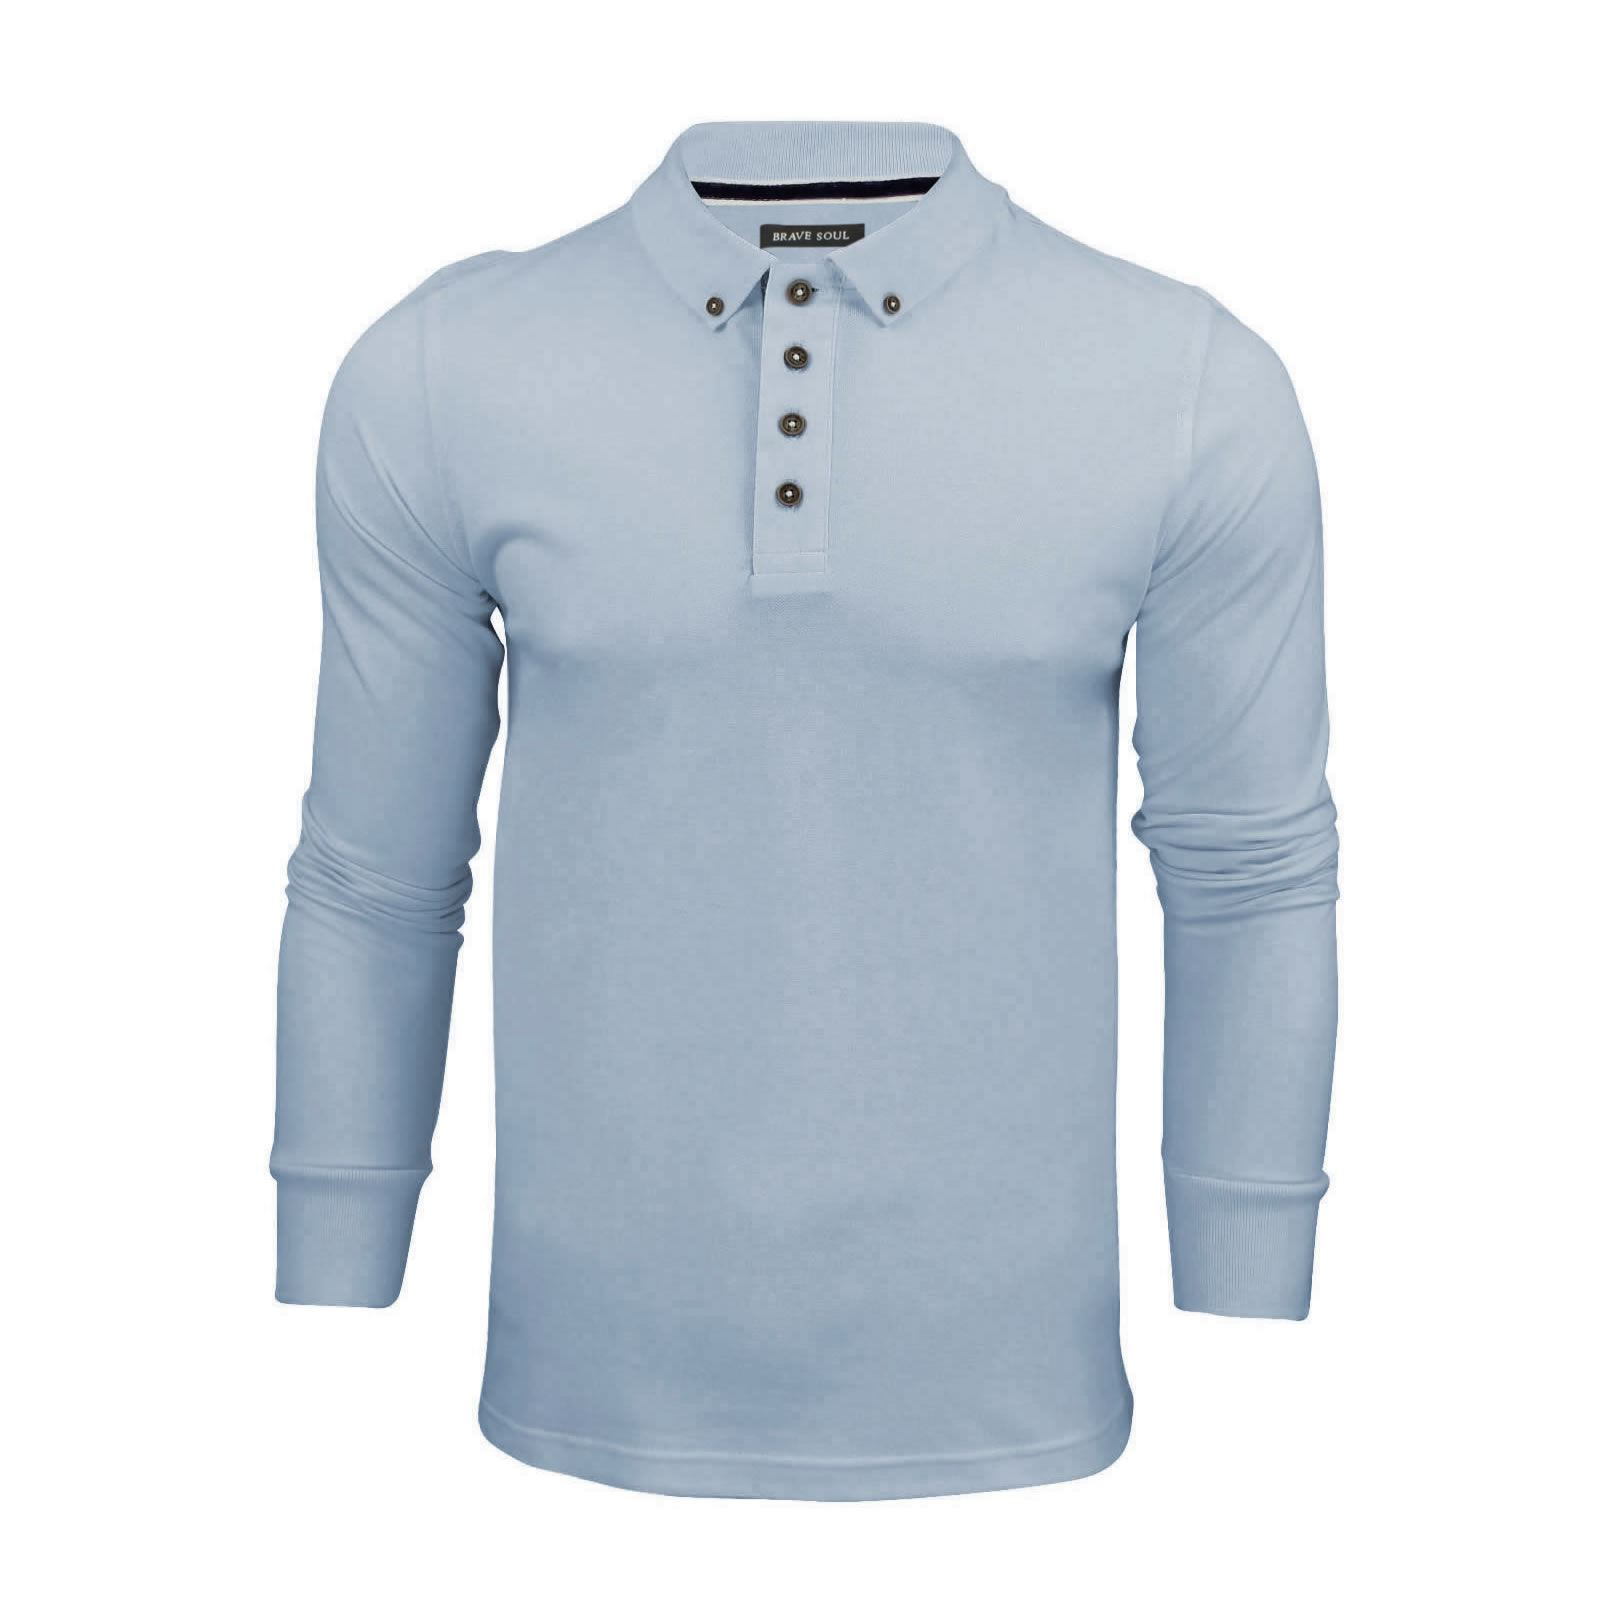 Brave-Soul-Lincoln-Mens-Polo-T-Shirt-Long-Sleeve-Cotton-Pique-Casual-Top thumbnail 42